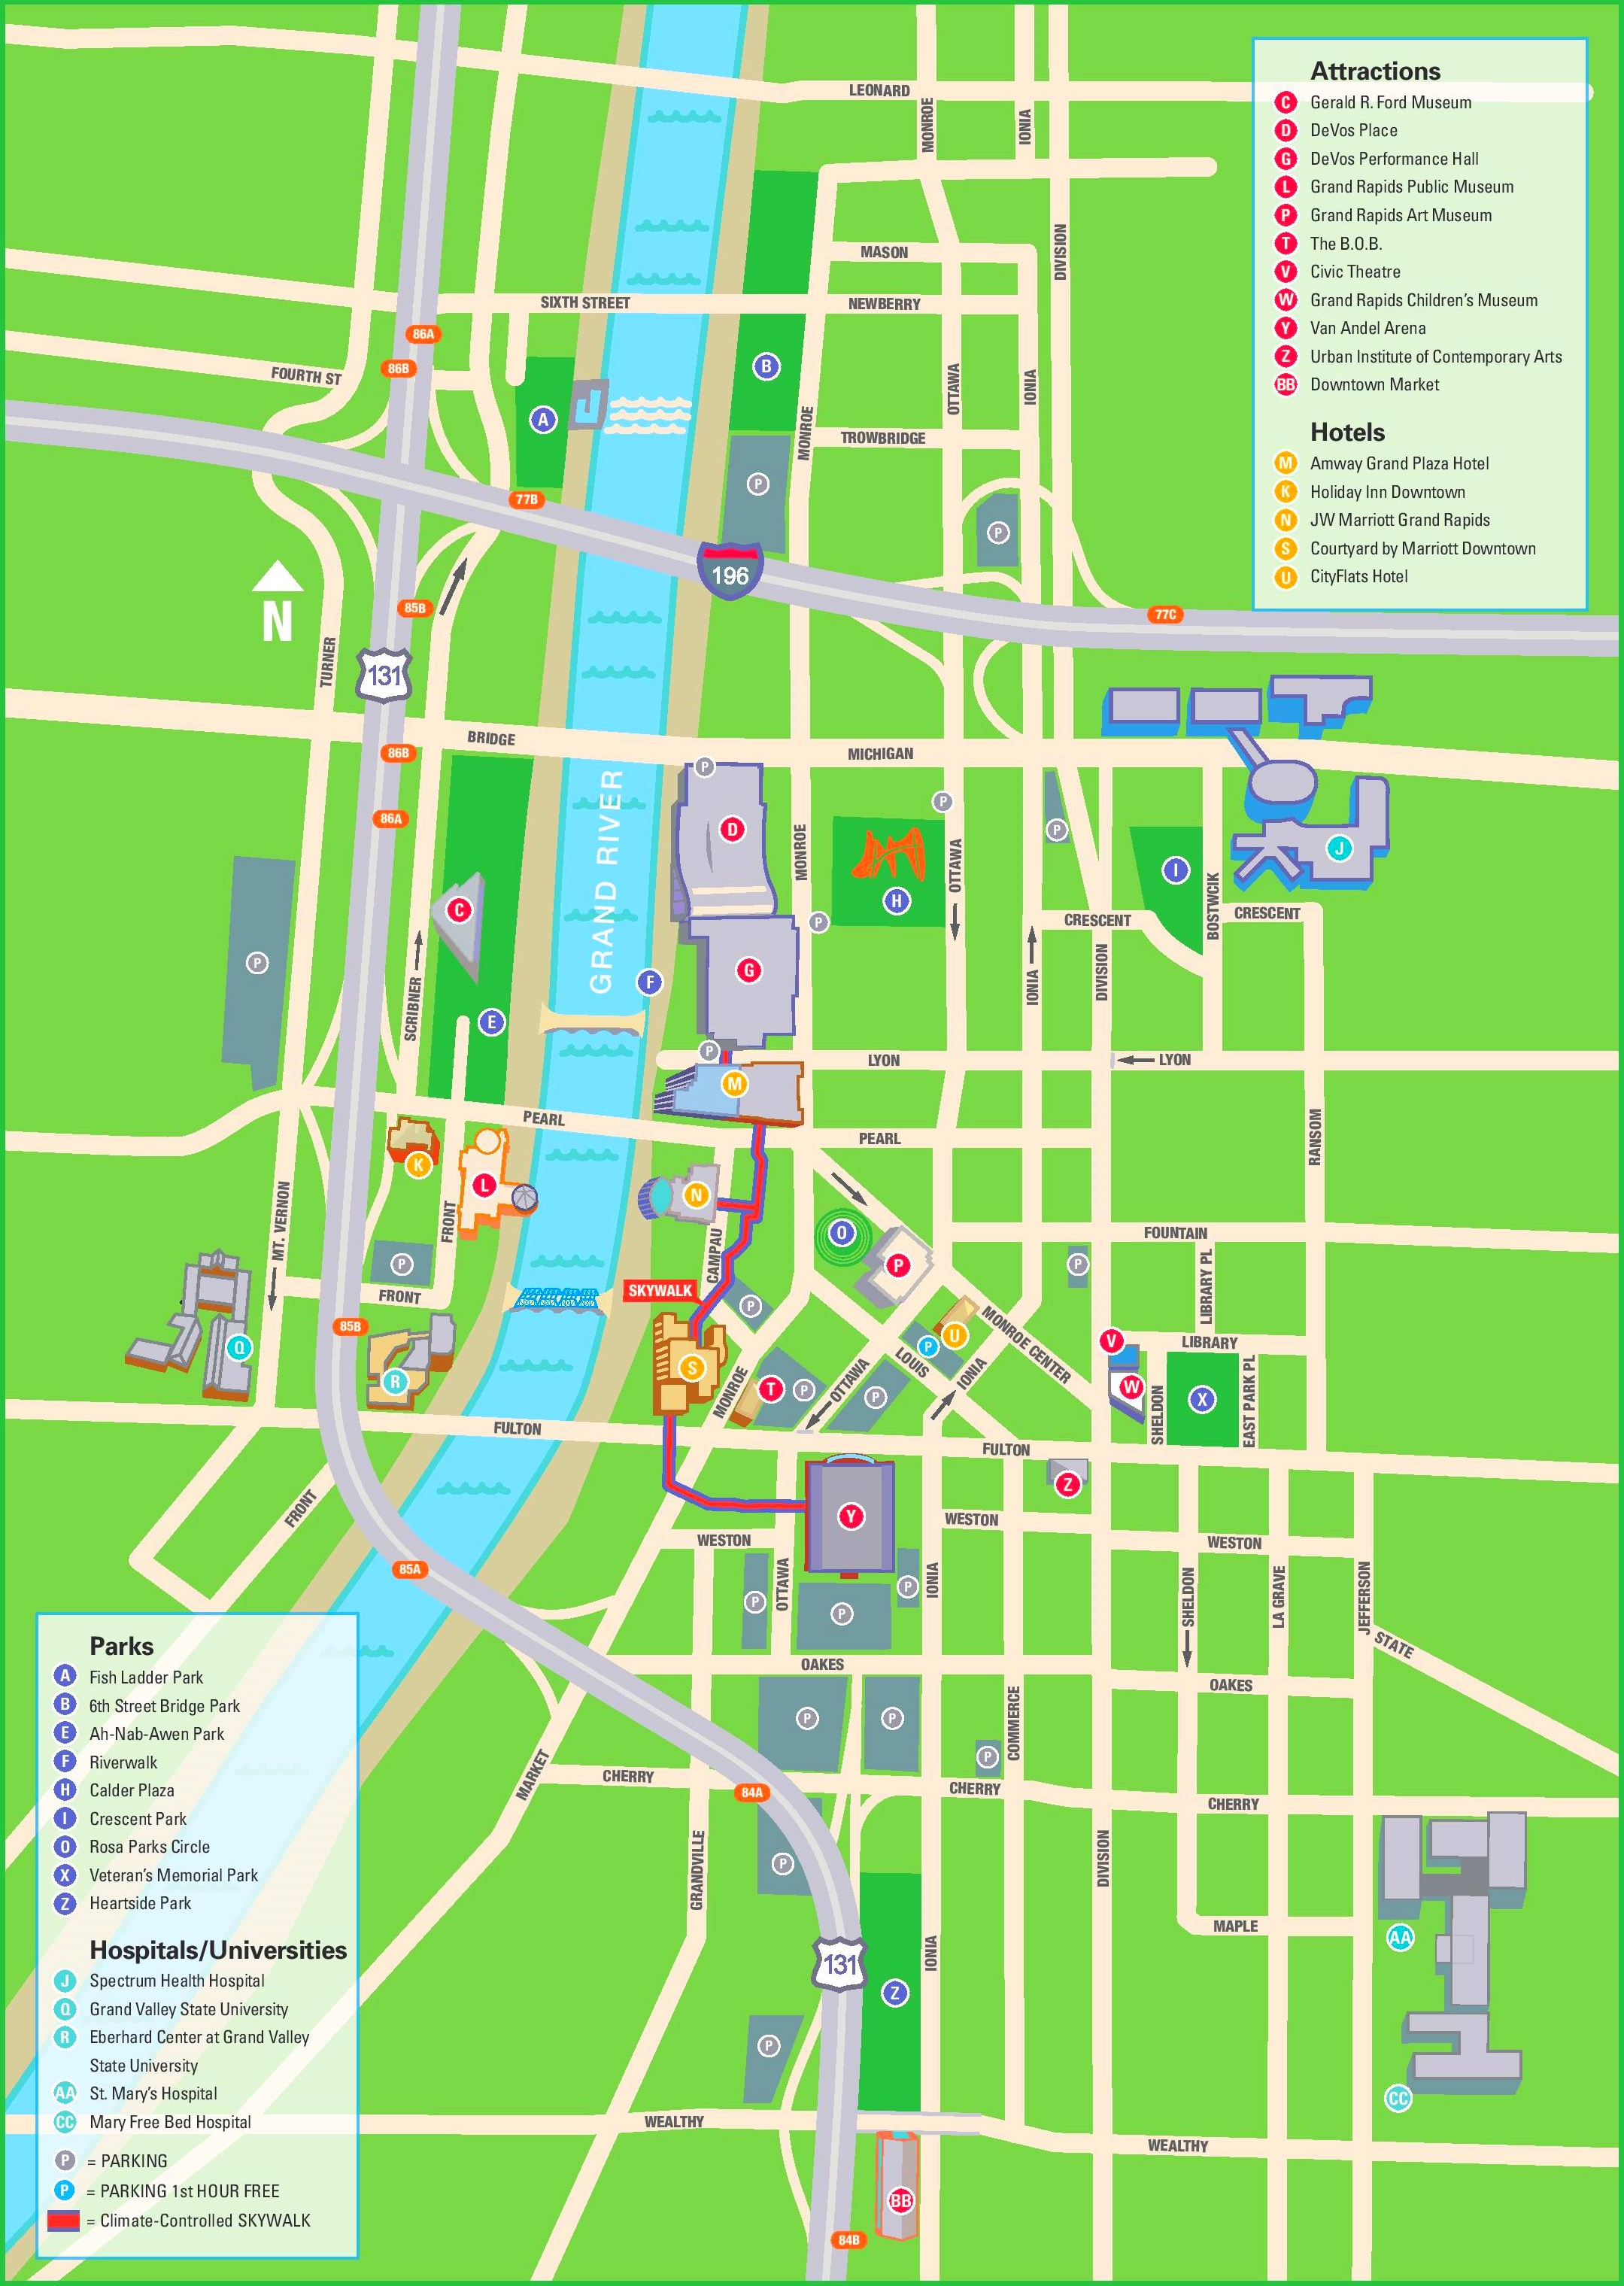 Grand Rapids hotels and sightseeings map